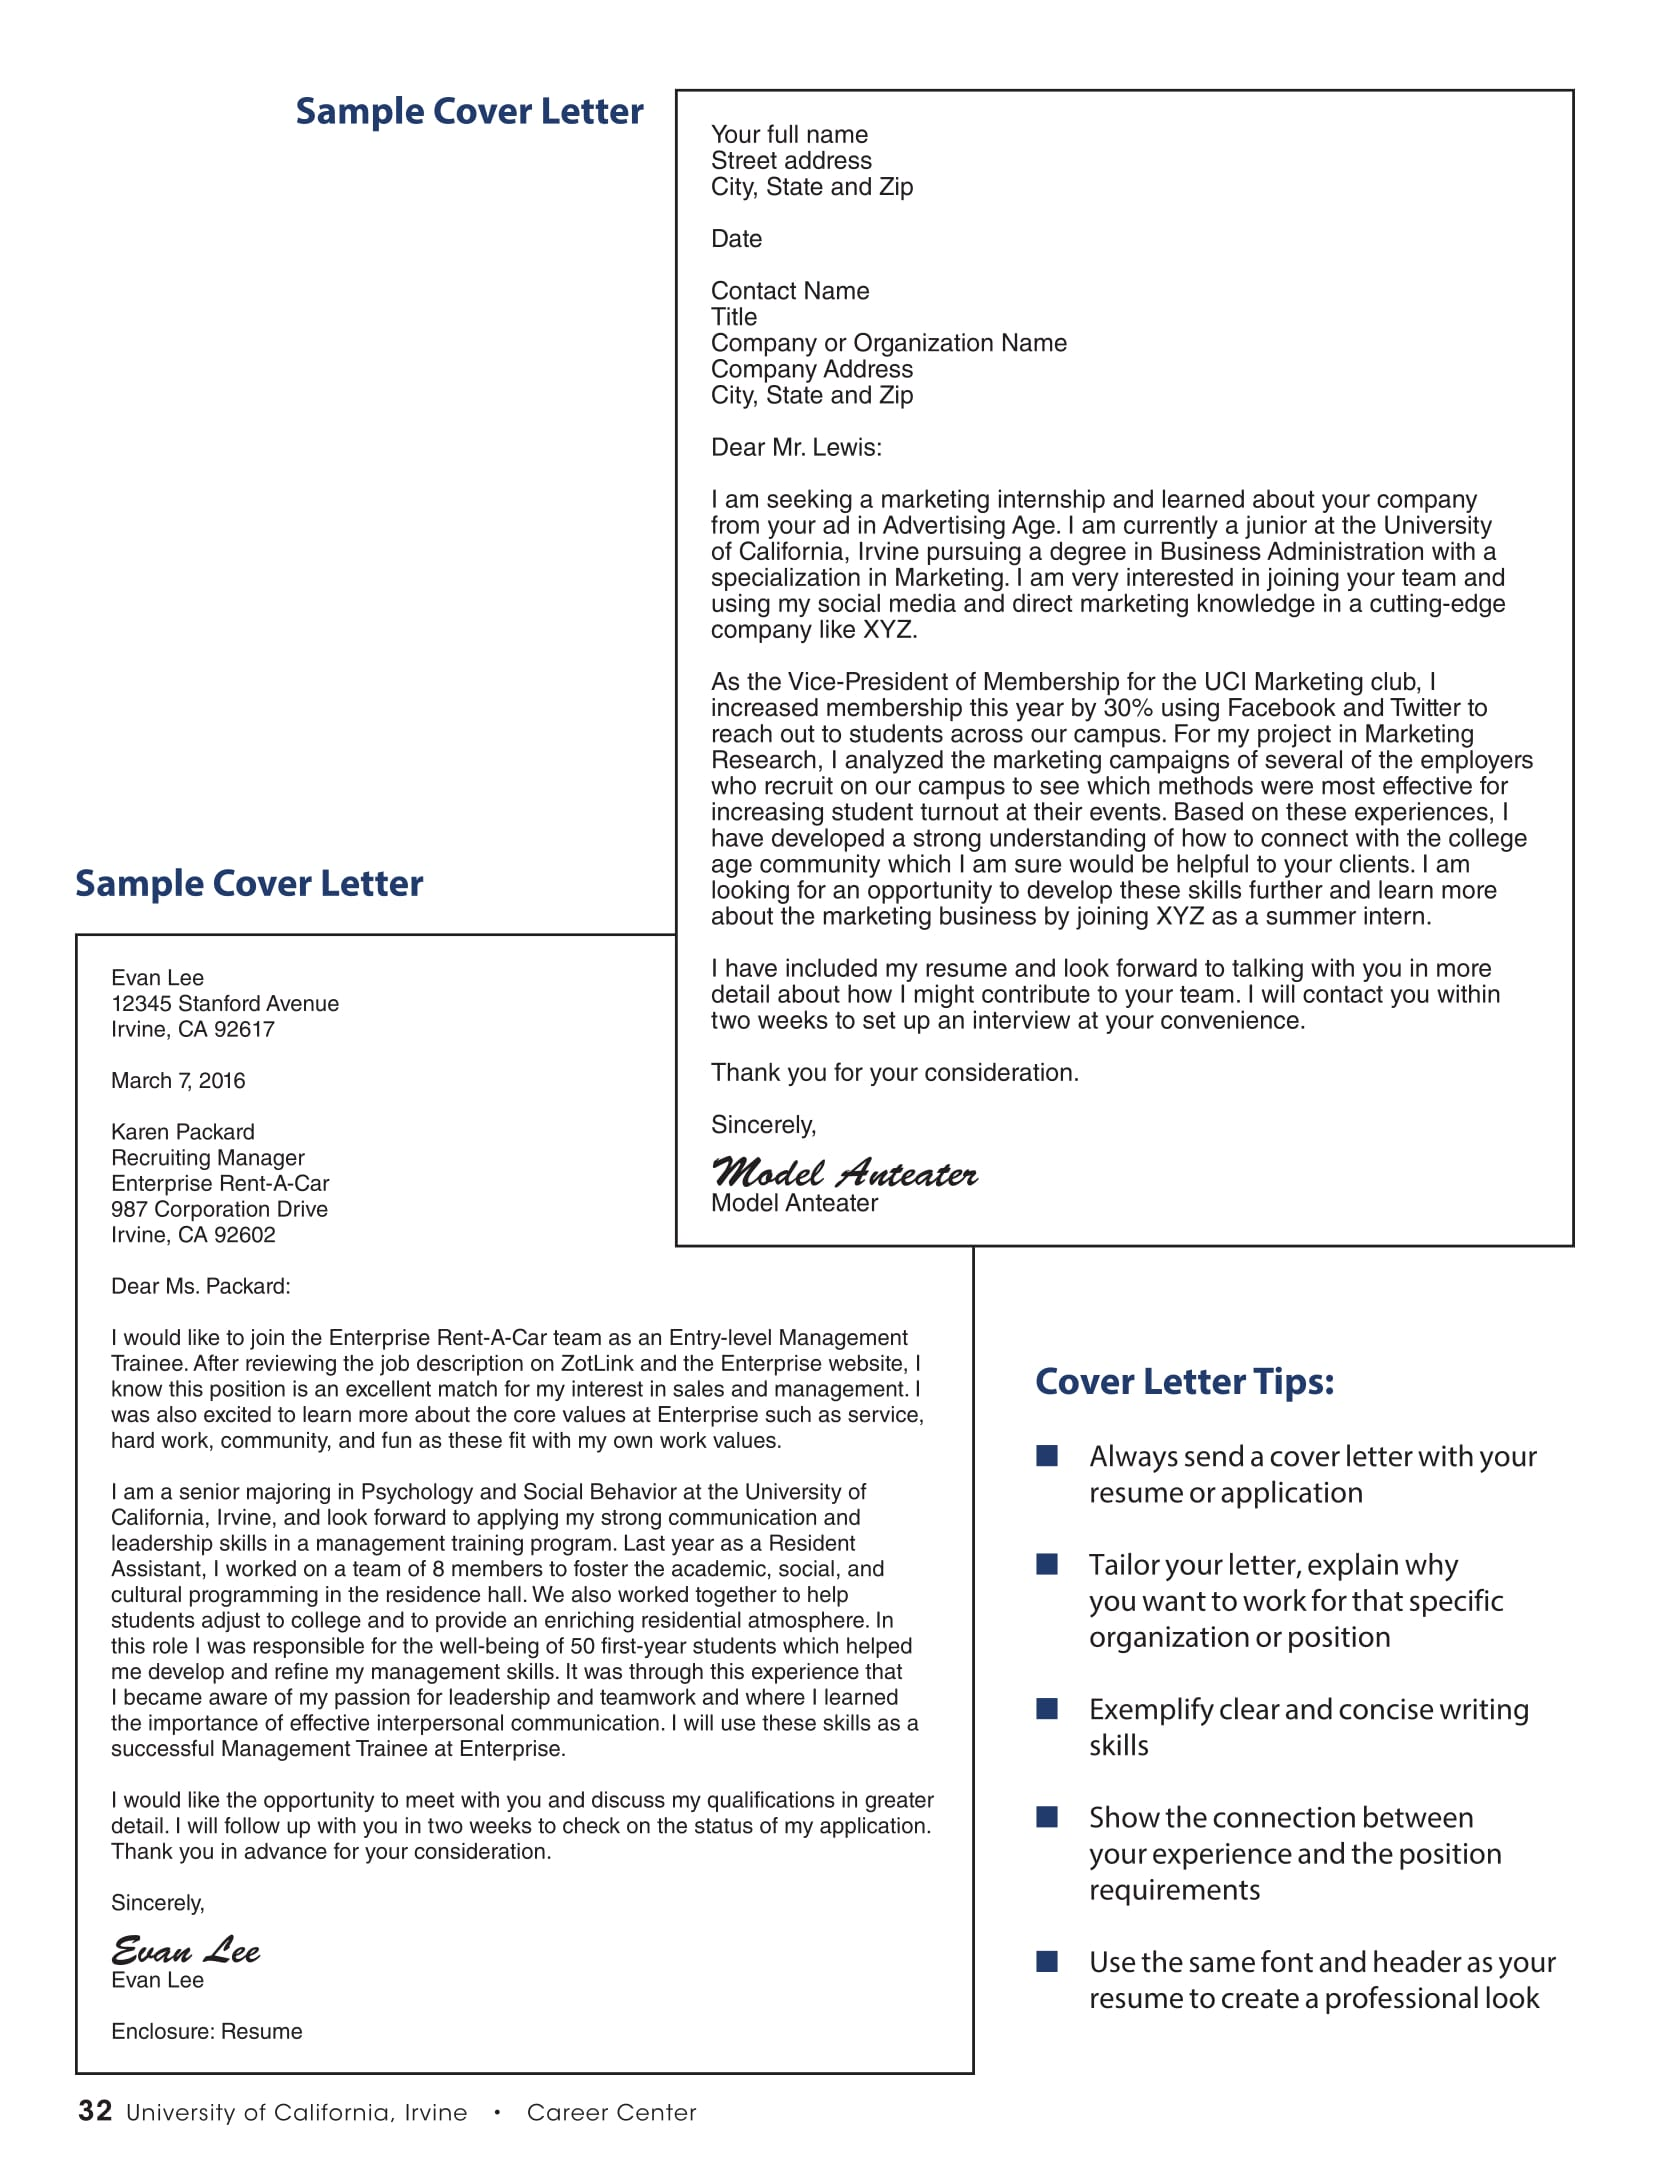 Best Sample Cover Letter Examples For Job Applicants  Wisestep